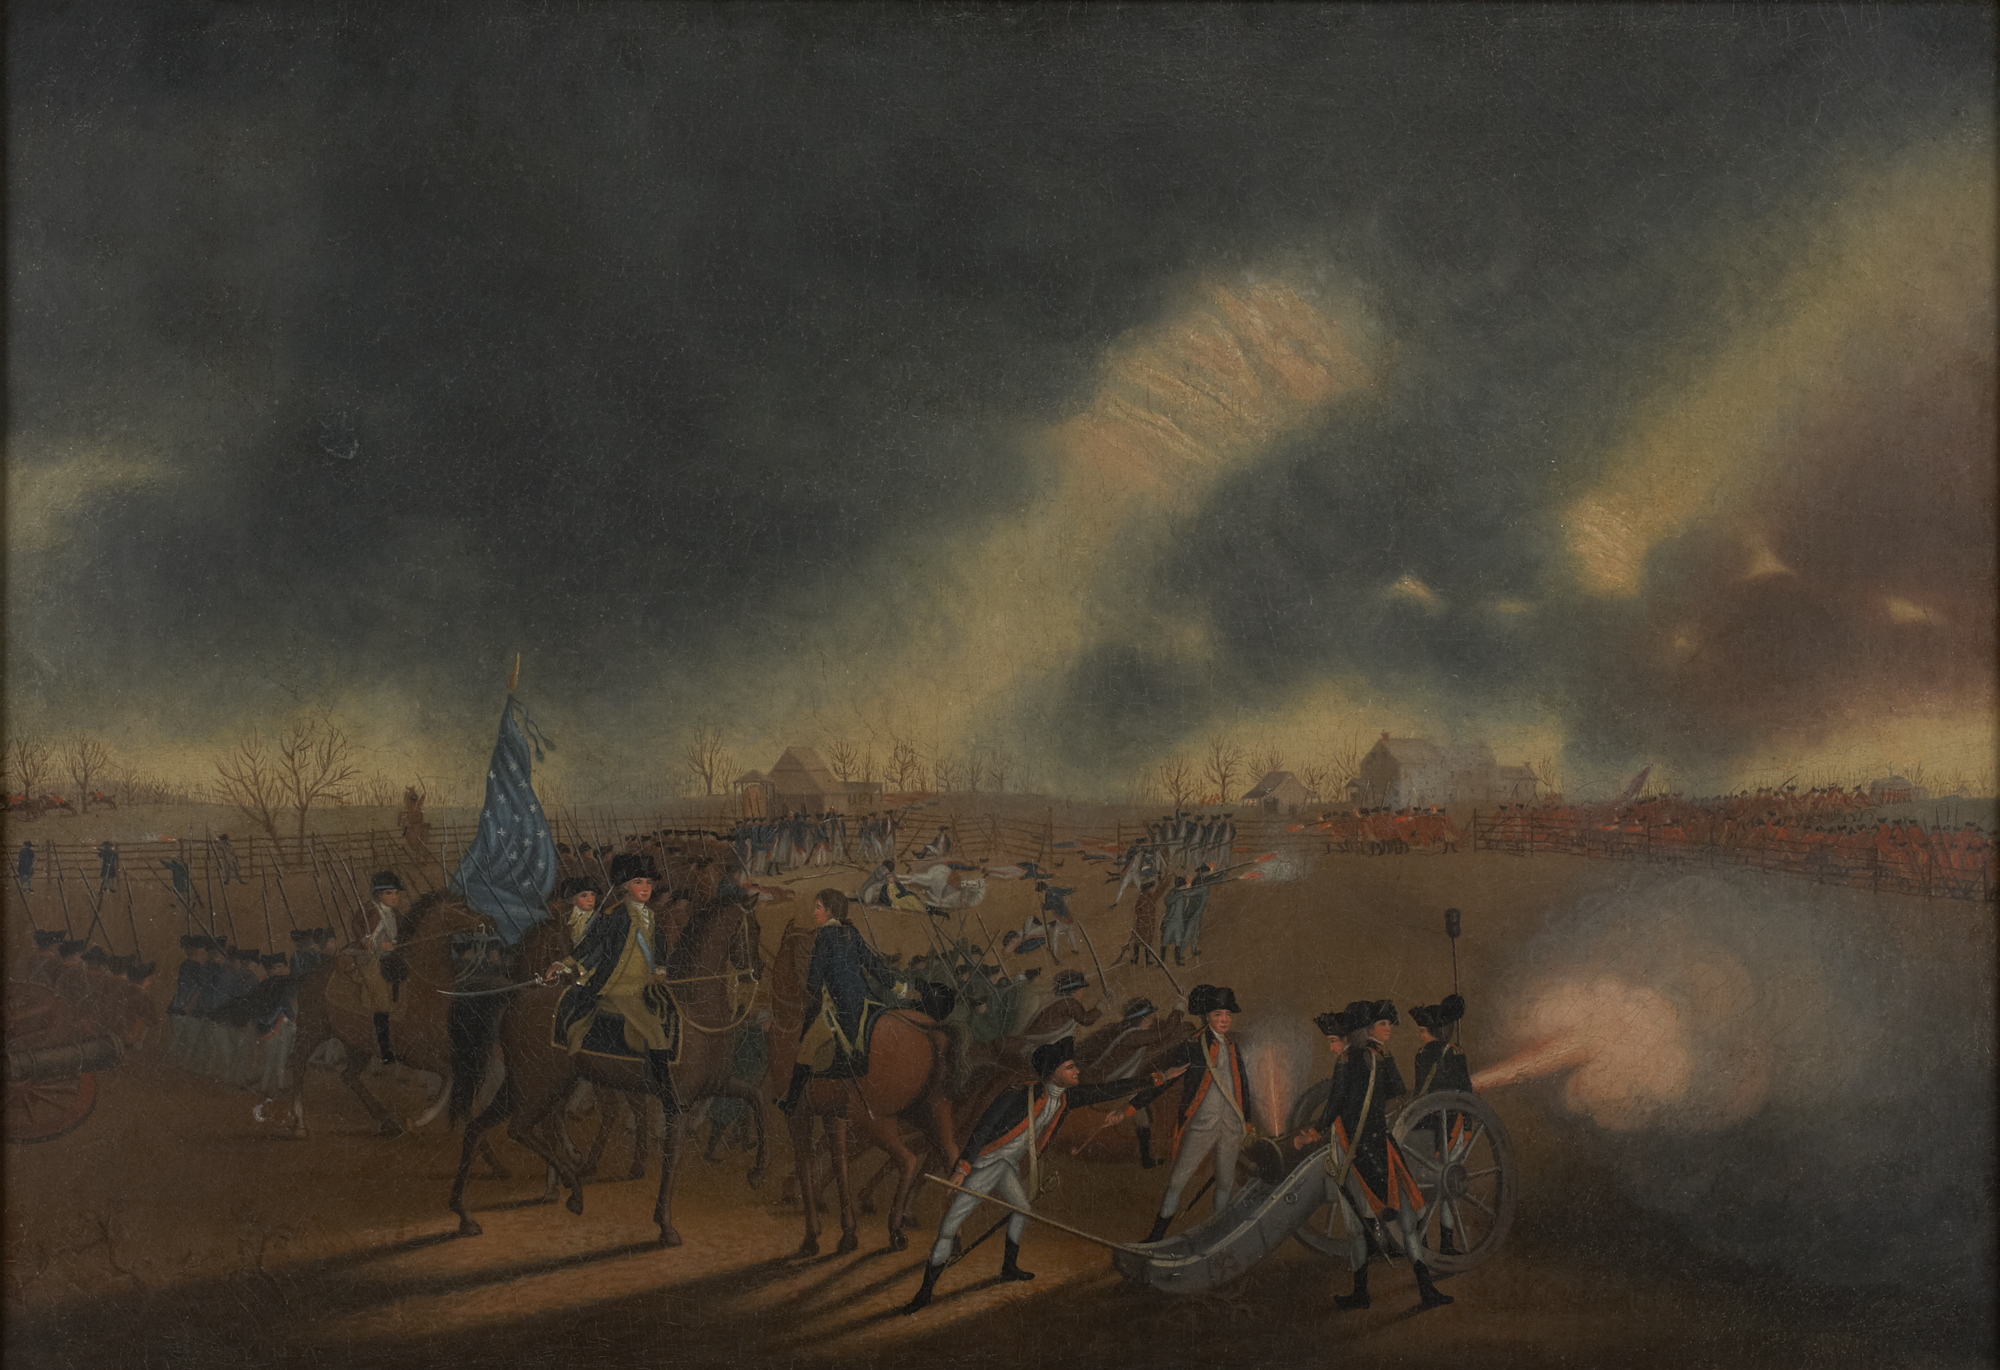 James Peale, American, 1749 - 1831. The Battle of Princeton, ca. 1782. Oil on canvas. Princeton University, gift of Dean Mathey, Class of 1912, in 1951.